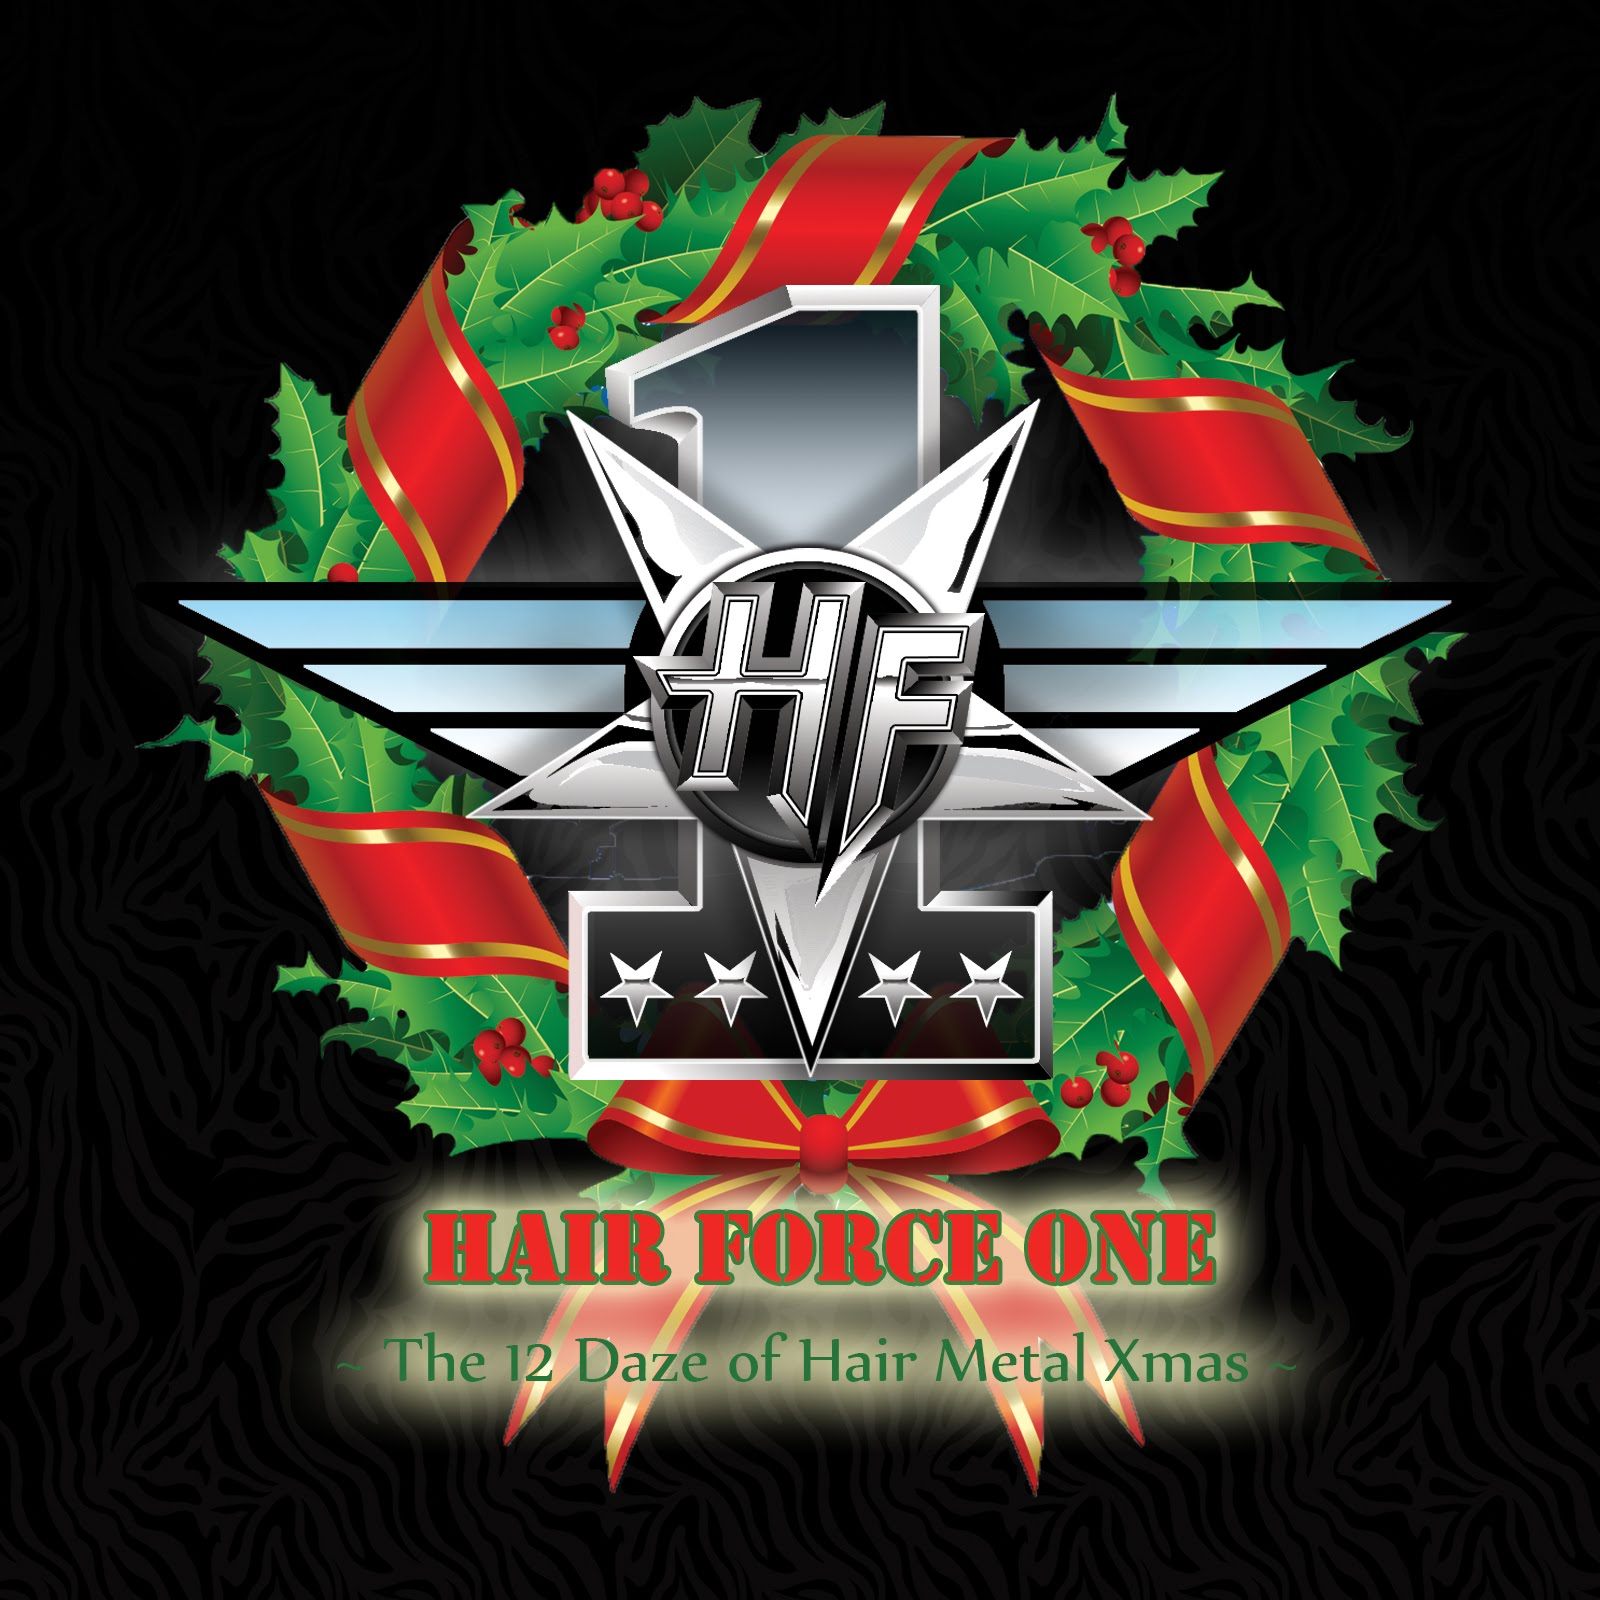 Day 3: Hair Metal Holiday - With special guest appearance by Andrew Carlsen, Todd Schartung, and a gang of skinhead toughs.